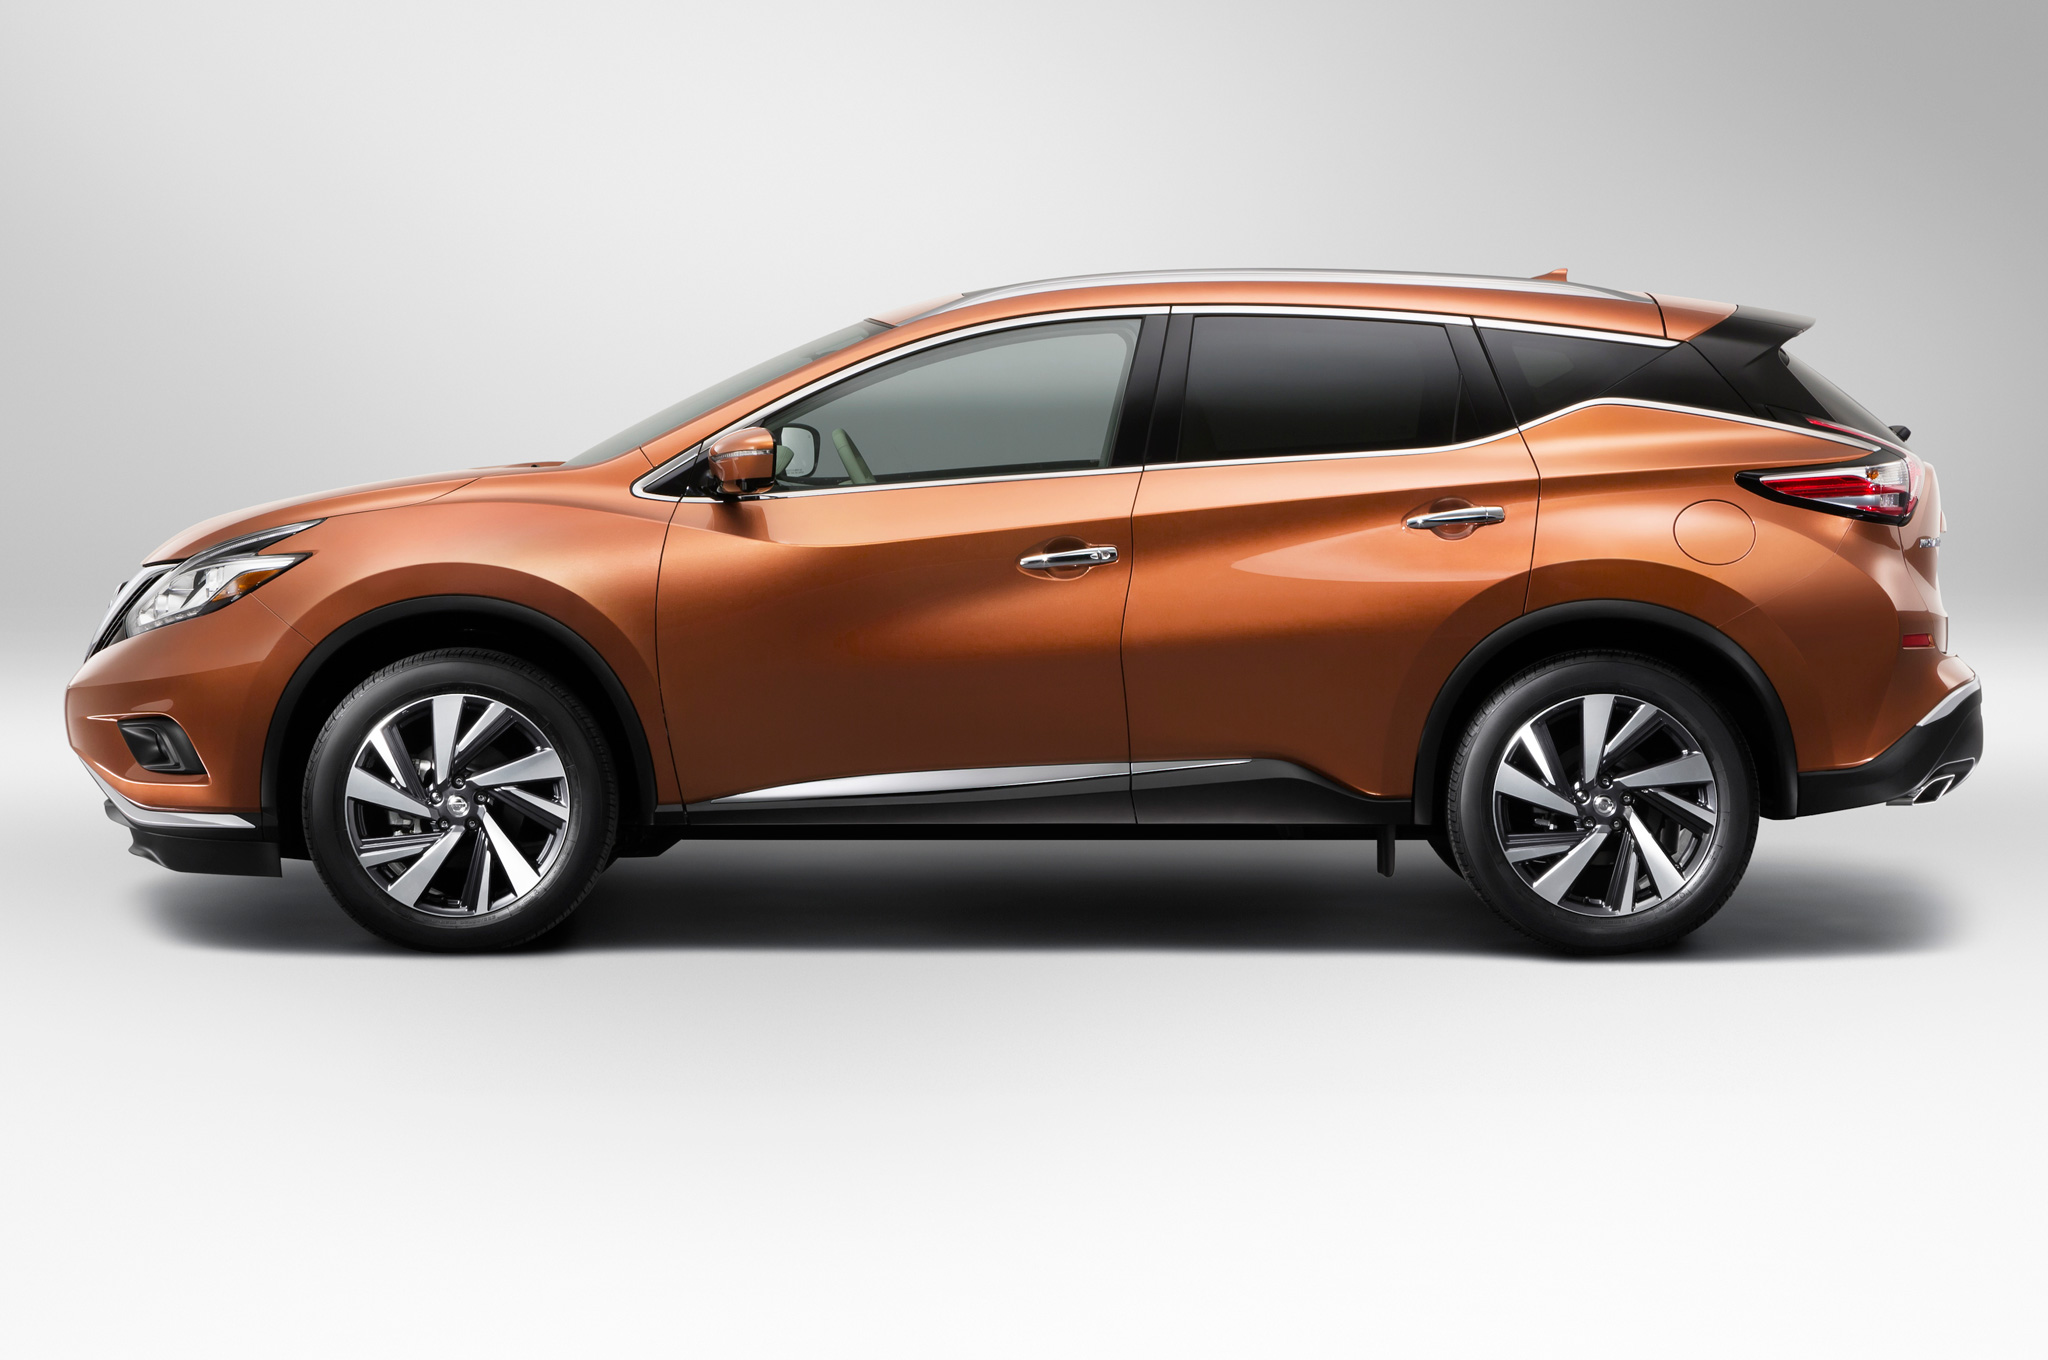 2015-nissan-murano-side-view